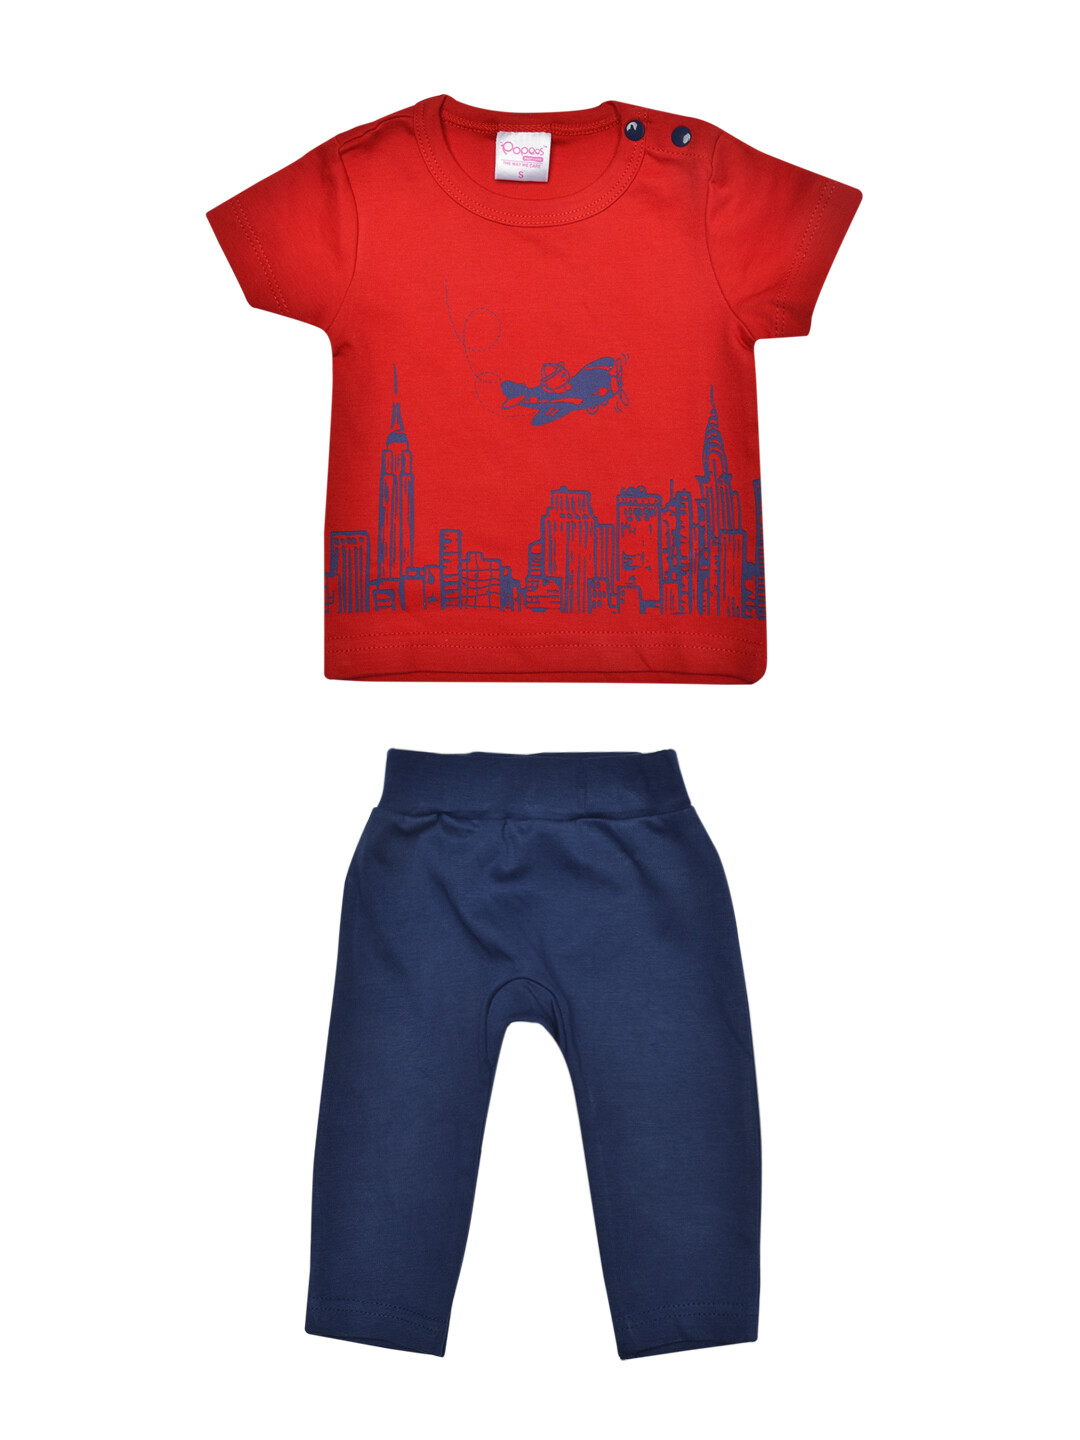 ​Metro Red ​Short Sleeves Printed Round Neck T-shirt with Blue Lounge Pant​​